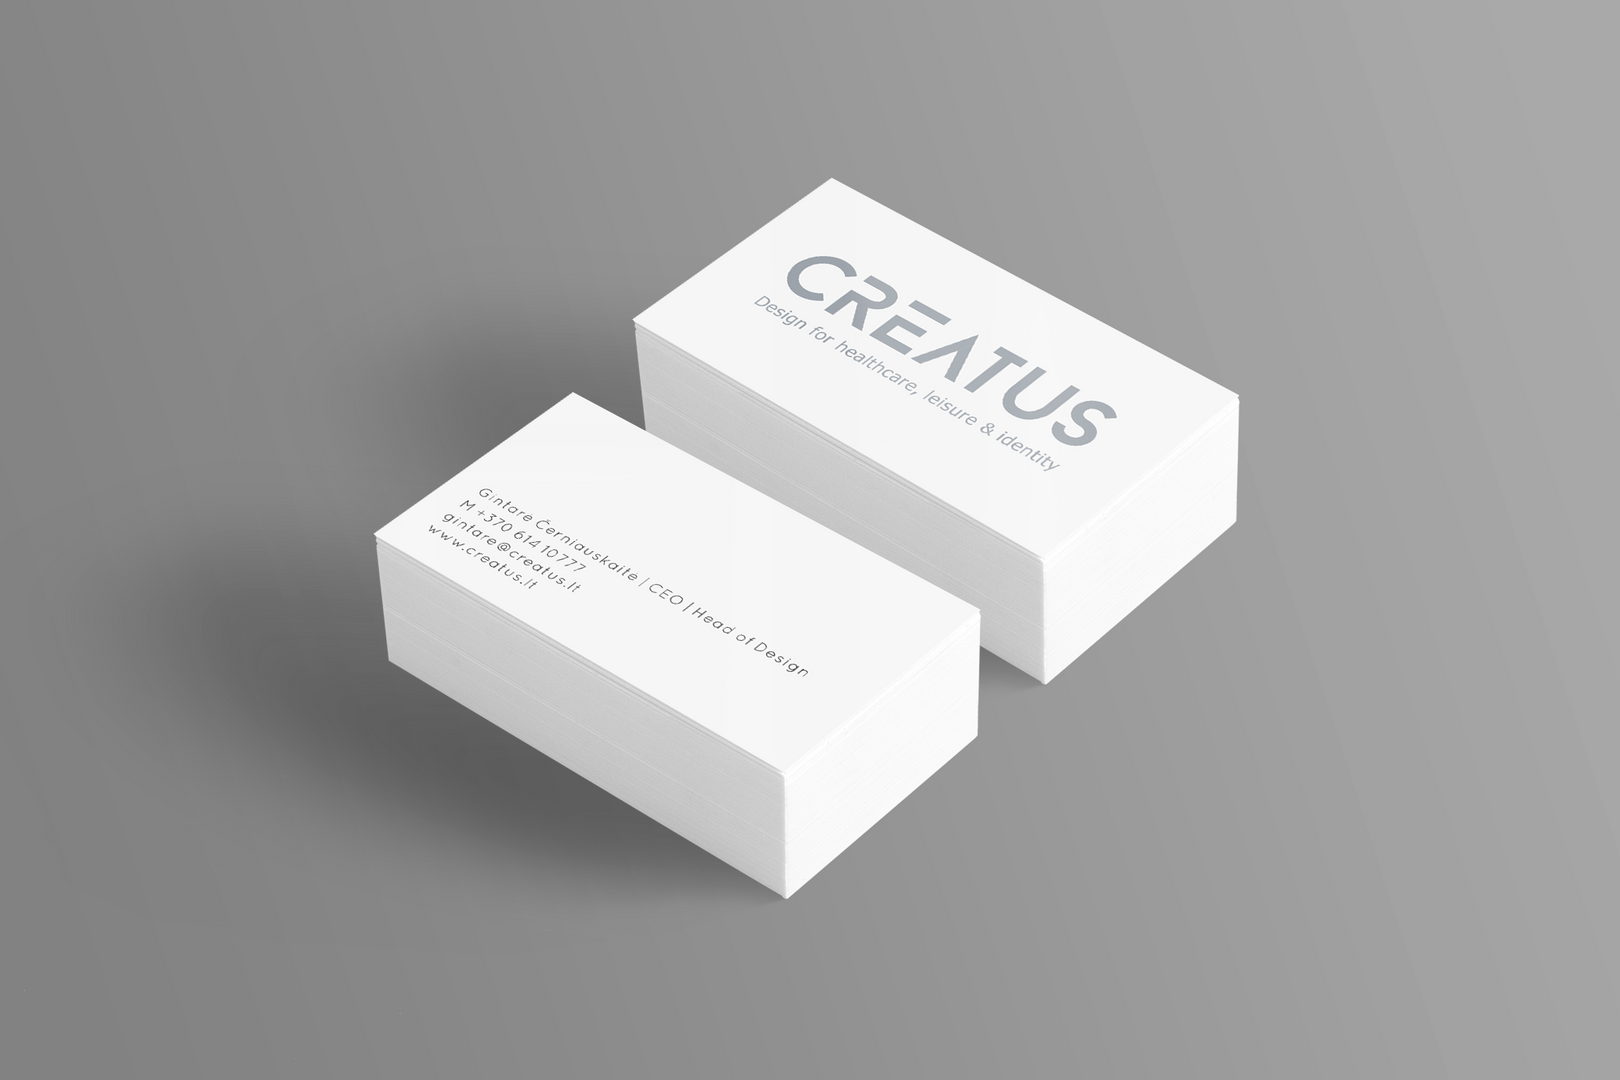 Creatus business card